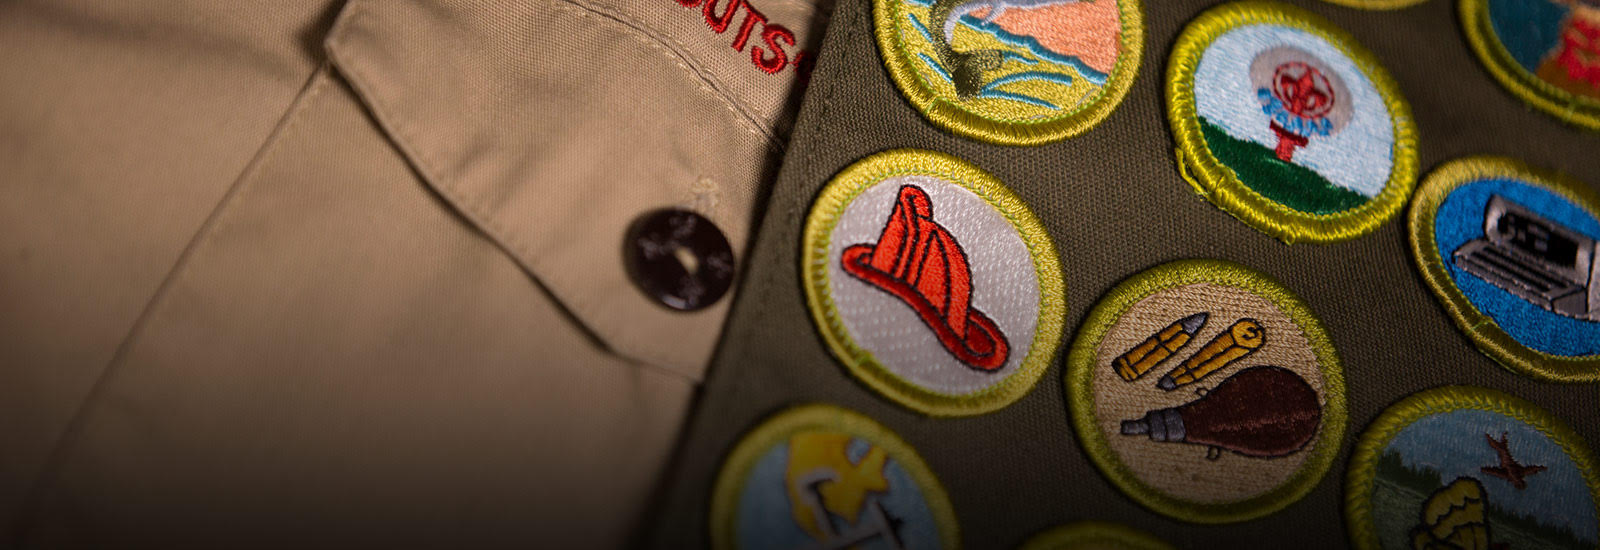 Close up of Boy Scout uniform, showing the badges sewn into the sash. The name Boy Scout can clearly be seen, with a fireman helmet badge as the most visible badge being displayed.